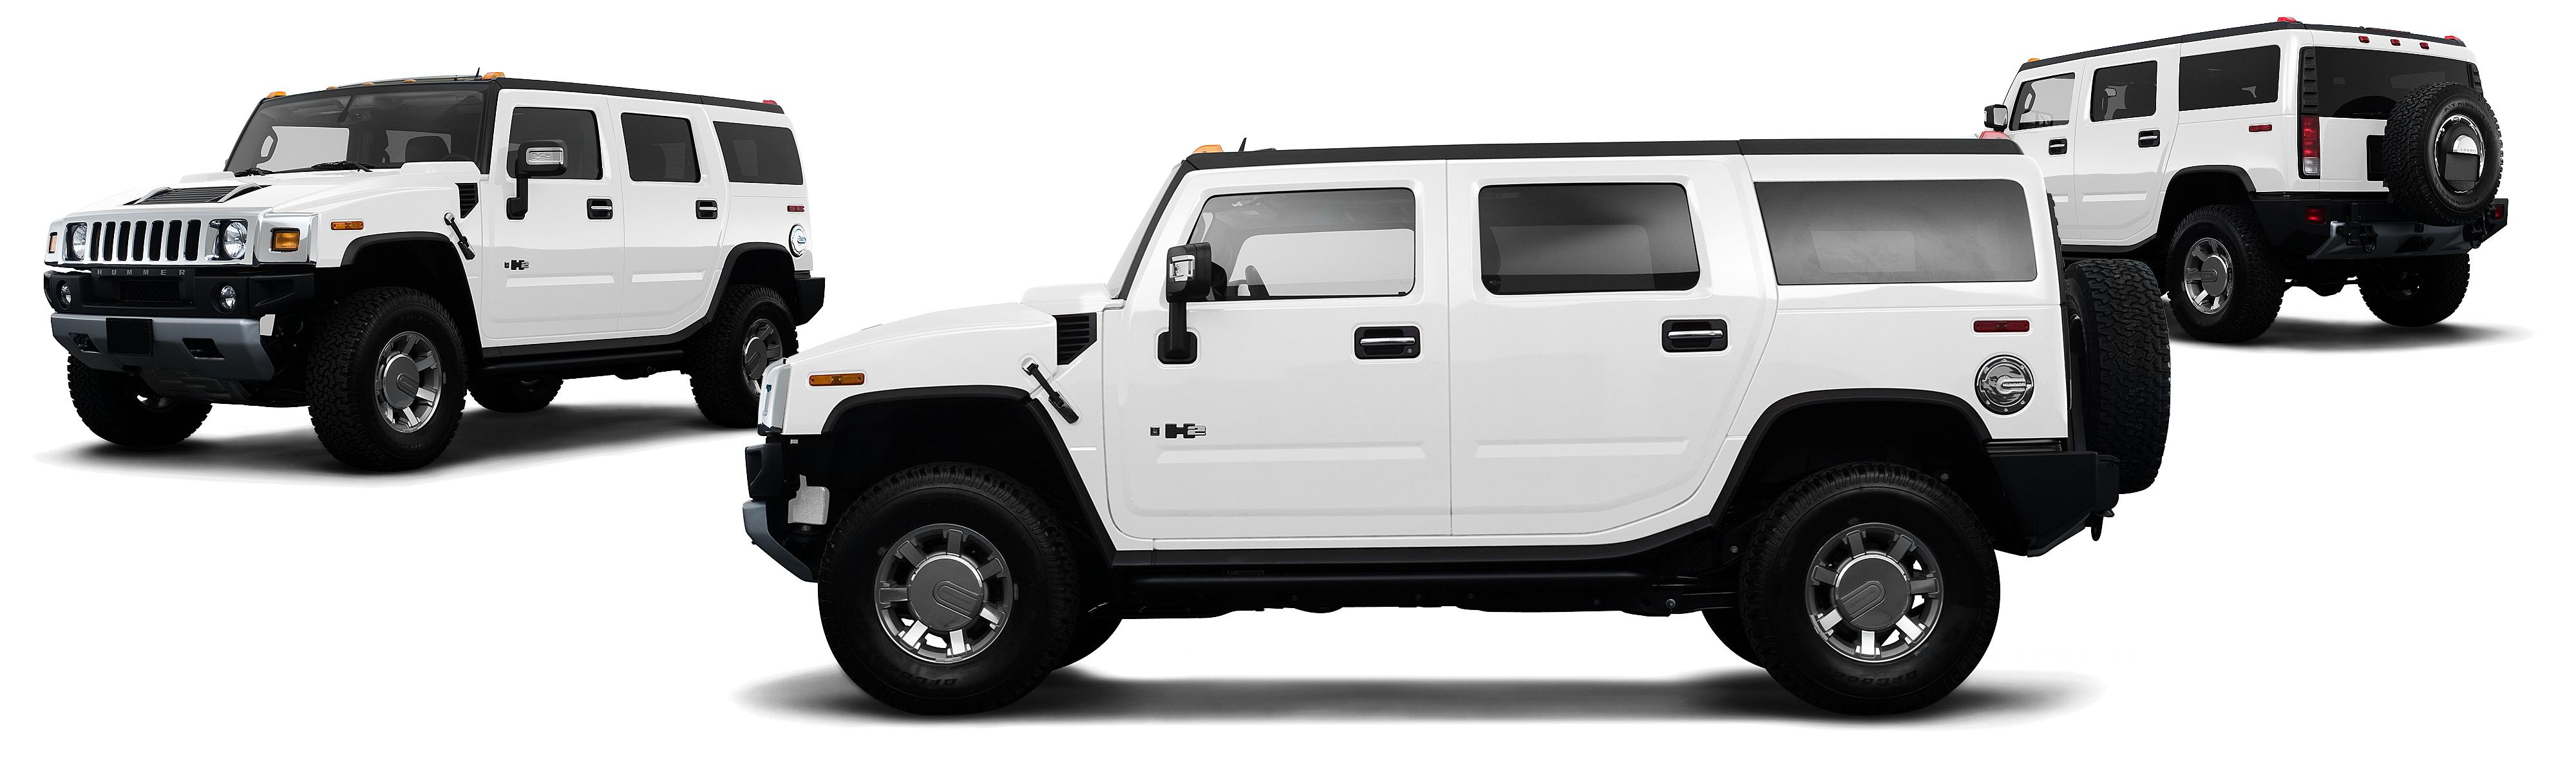 2008 HUMMER H2 4x4 Base 4dr SUV Research GrooveCar